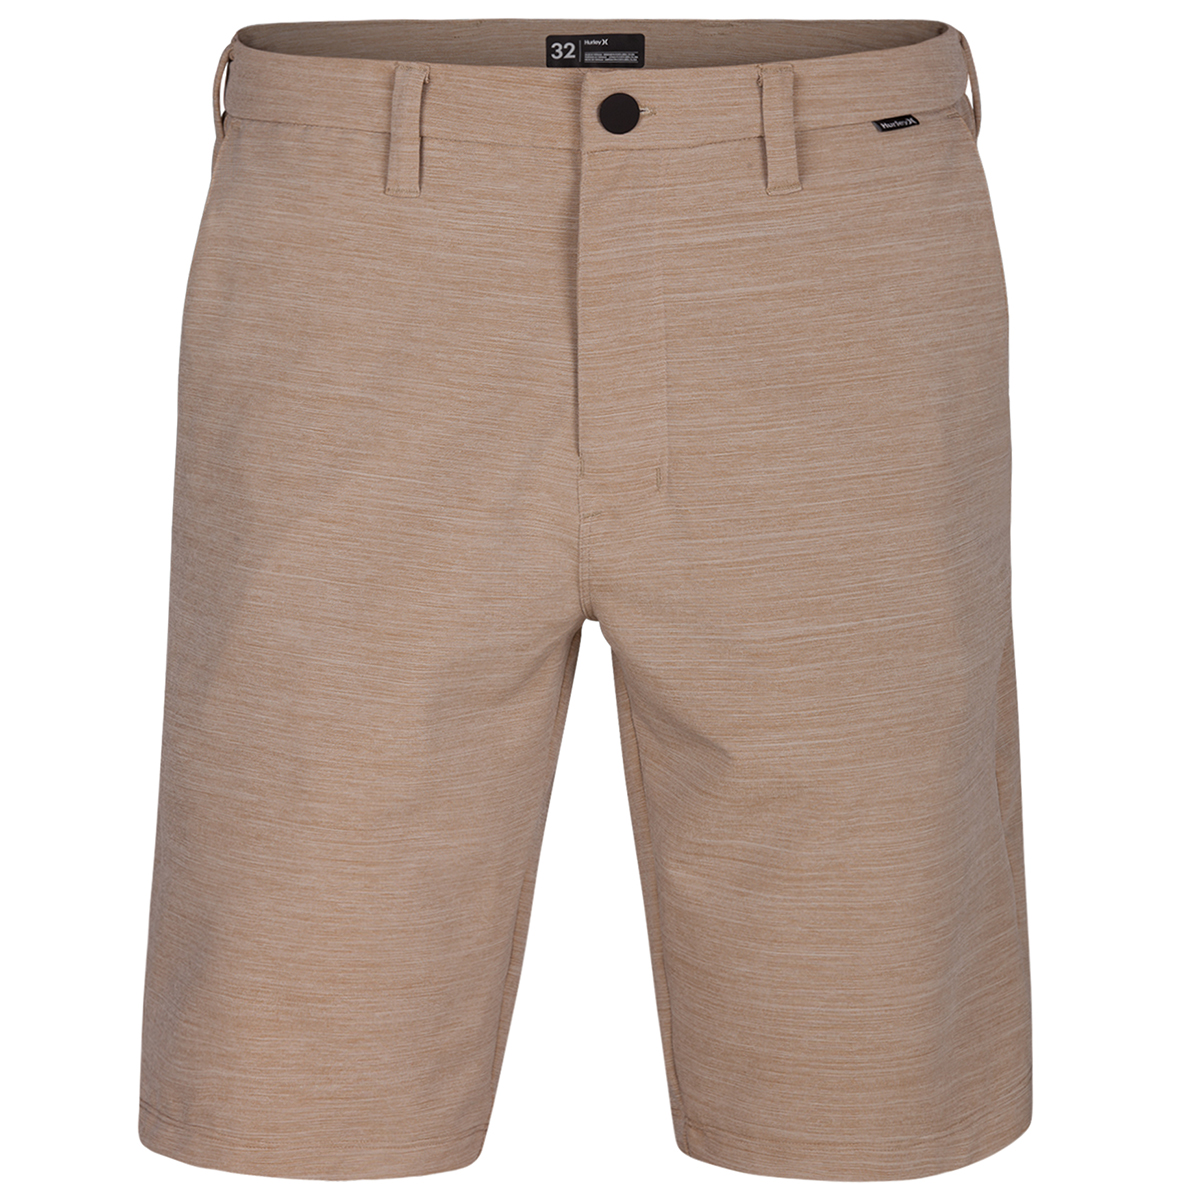 Hurley Young Men's Dri Fit Cut Back Shorts - Brown, 32